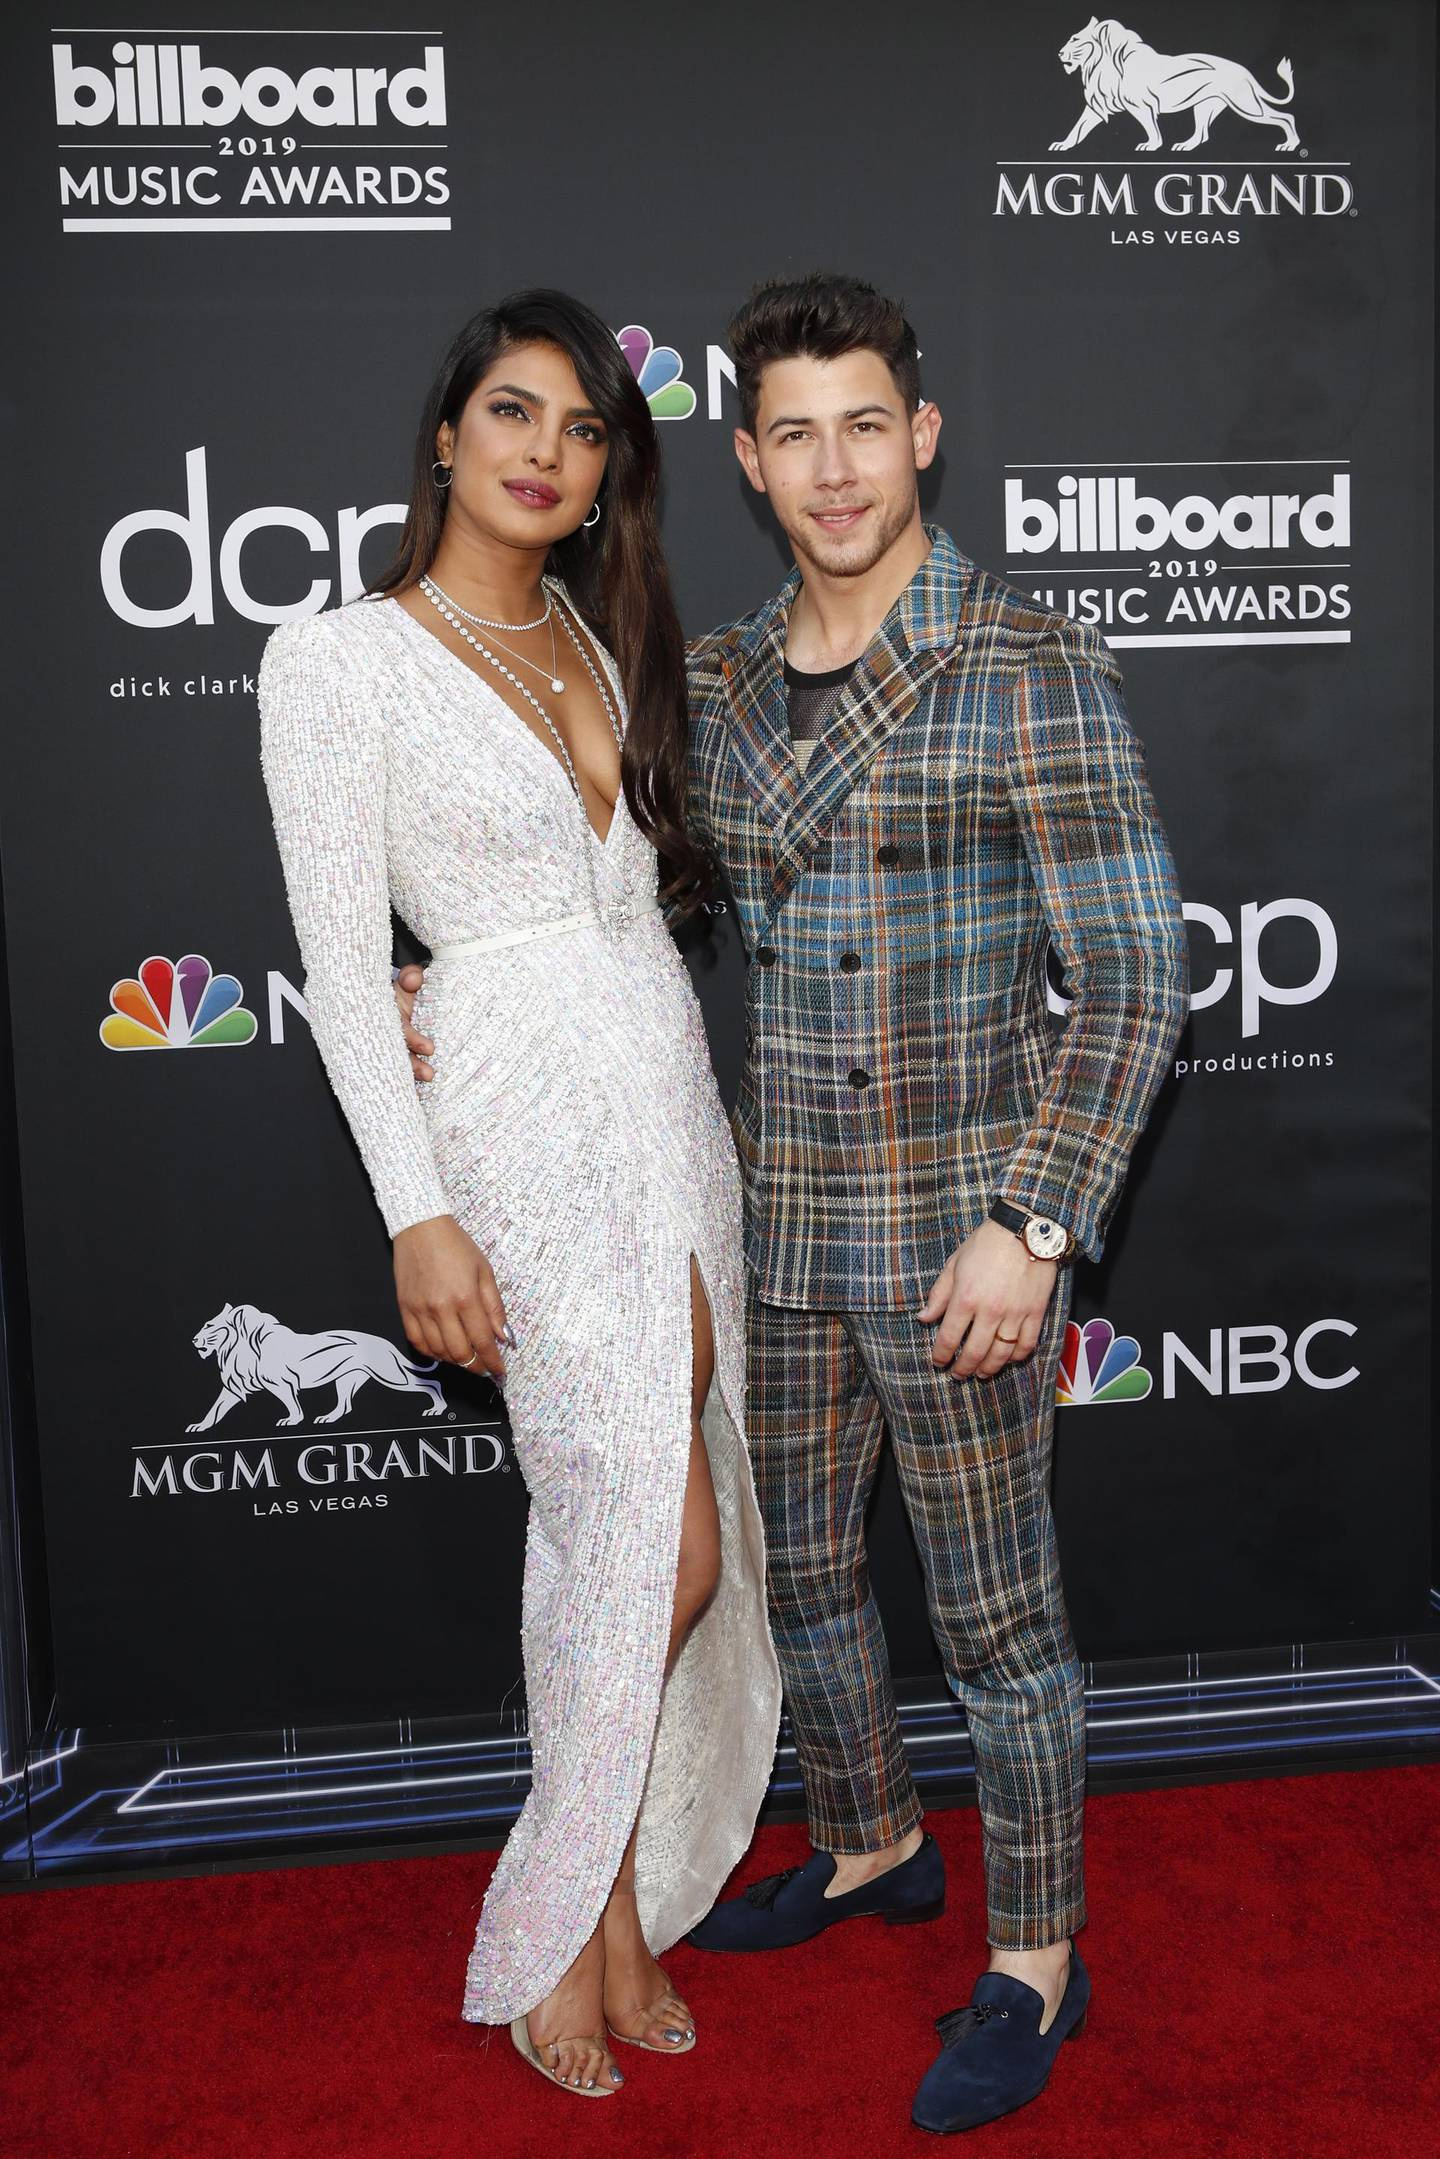 epa07541613 Indian singer Priyanka Chopra (L) and US singer Nick Jonas (R) arrive for the 2019 Billboard Music Awards at the MGM Grand Garden Arena in Las Vegas, Nevada, USA, 01 May 2019. The Billboard Music Awards finalists are based on US year-end chart performance, sales, number of downloads and total airplay.  EPA/NINA PROMMER